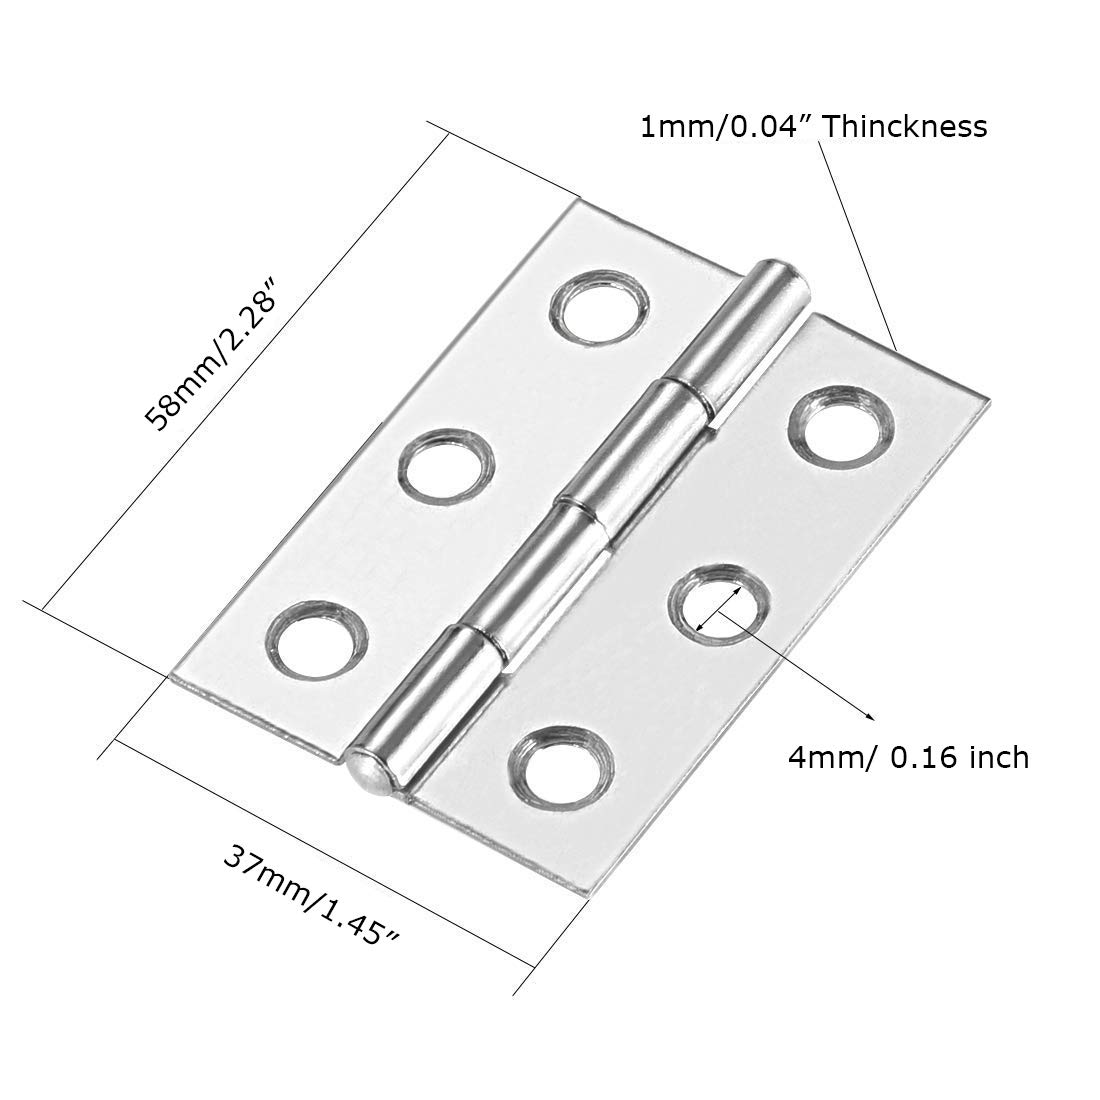 86x56x1.5mm//3.38 x 2.2x0.06 Cyful 10 Pieces Stainless Steel Folding Butt Hinges Fittings for Cabinet Drawer Door 86x56mm//3.38 x 2.2 inch